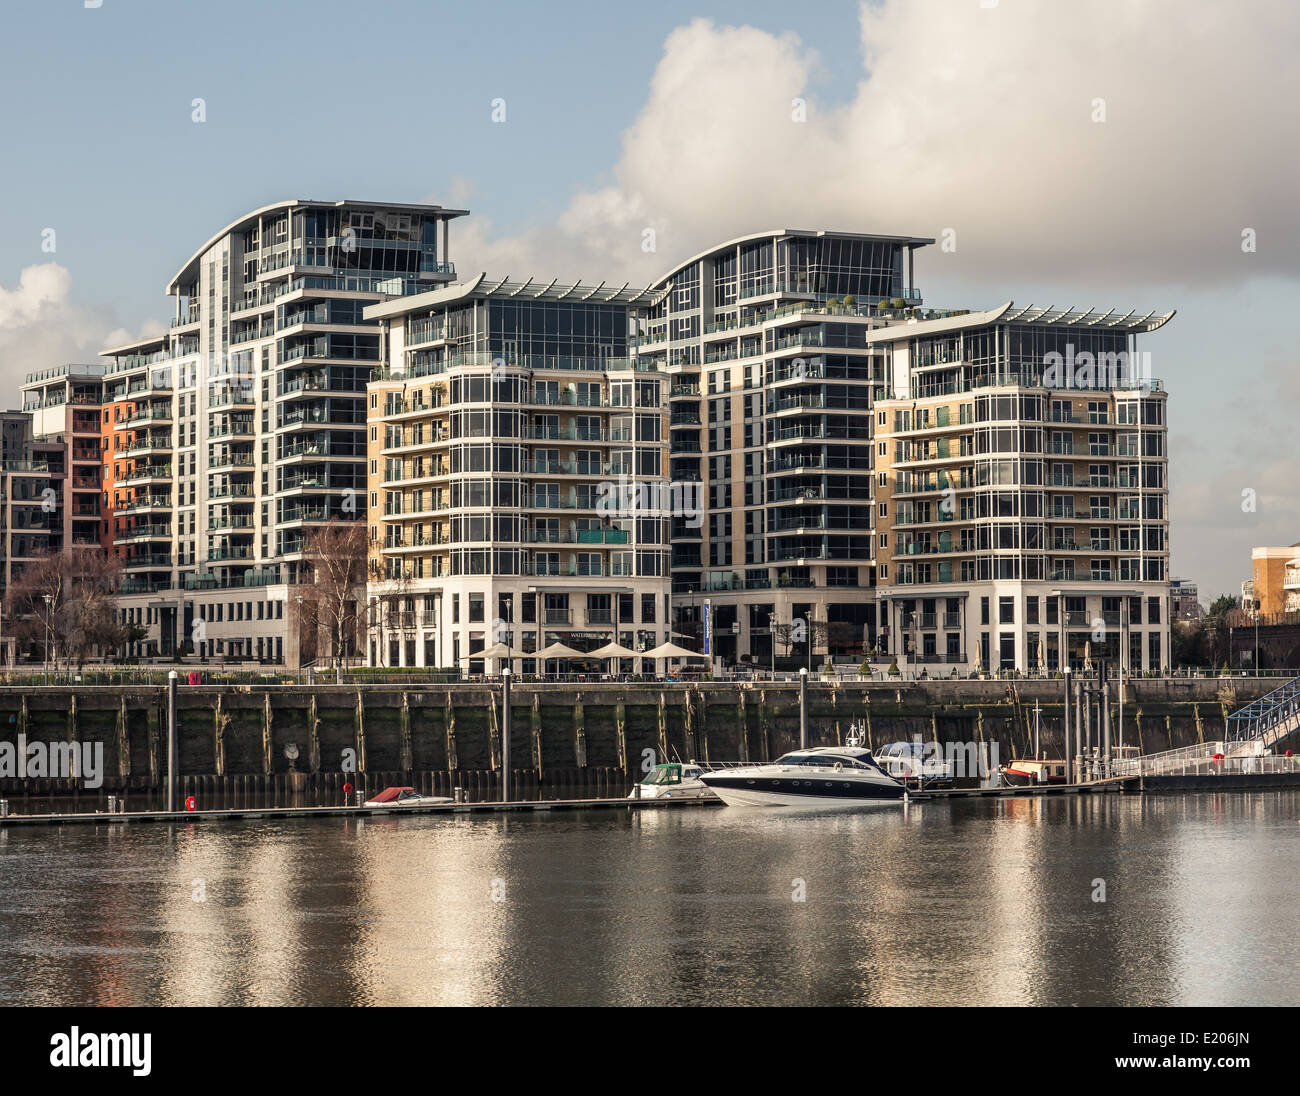 Luxury Waterside Apartments In Chelsea, London On The Banks Of The River  Thames